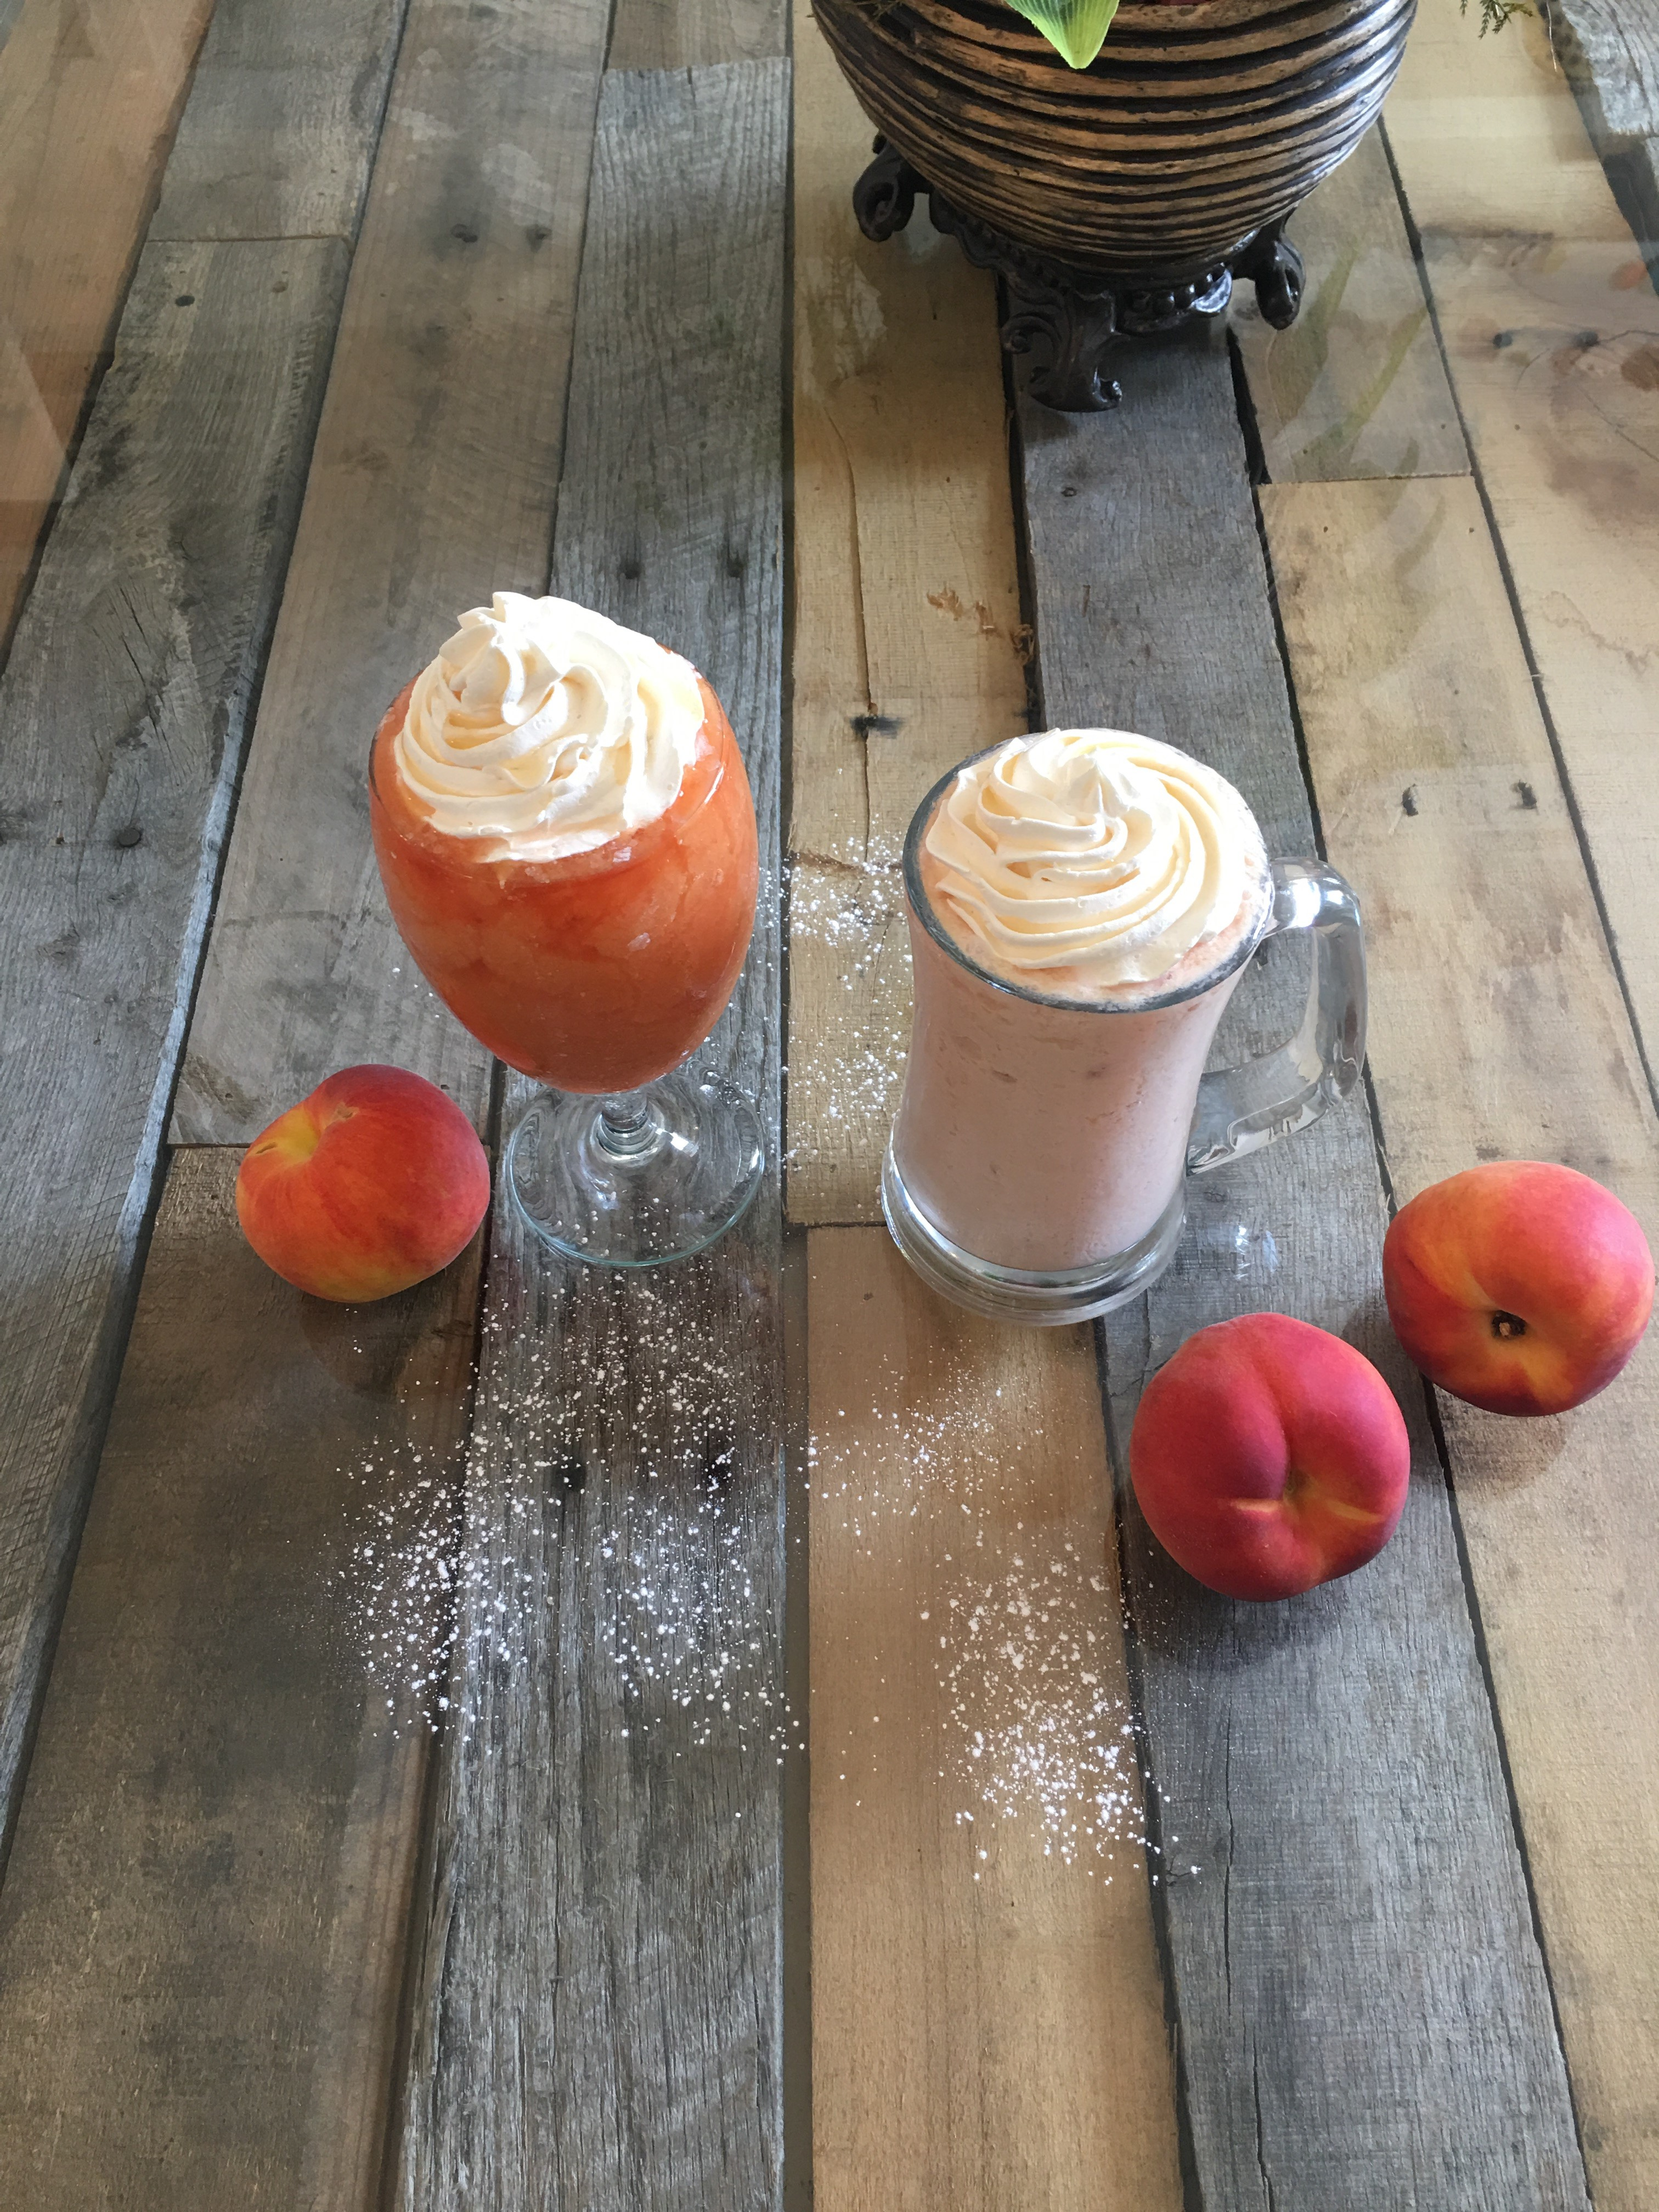 Image of two Orange and Peach smoothies, topped with a whip cream.